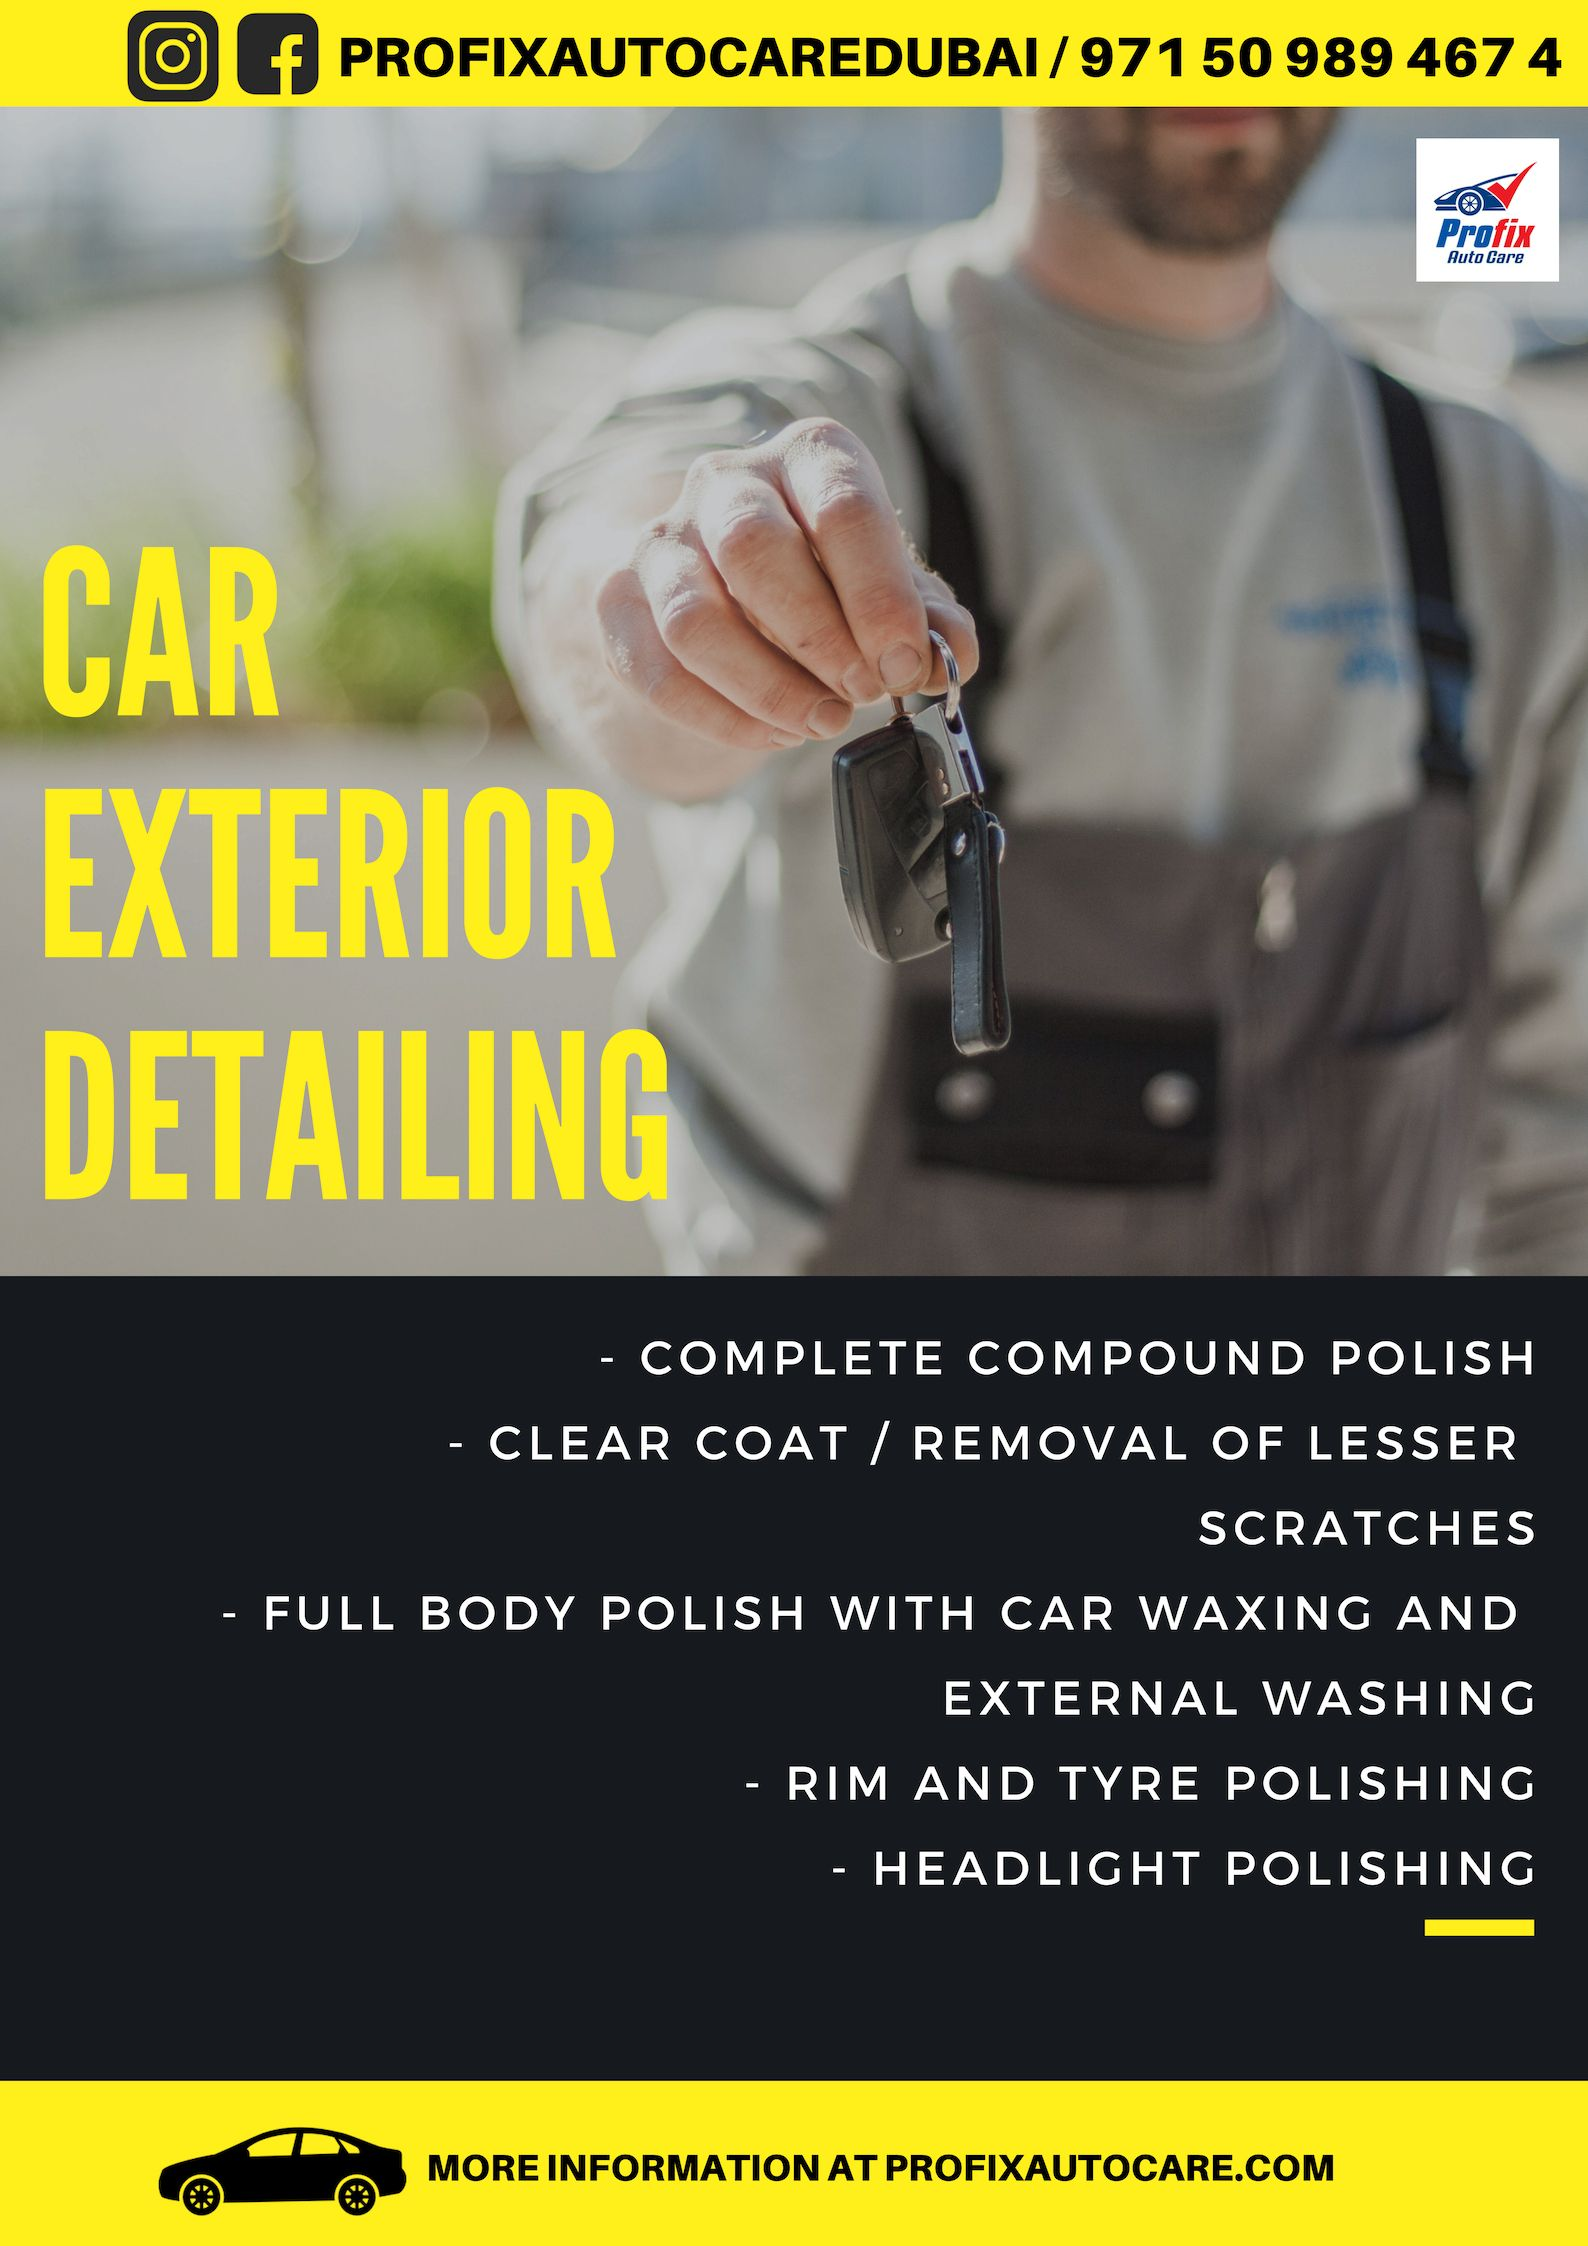 UAE BEST CAR GARAGE: Get an awesome exterior detailing and ...